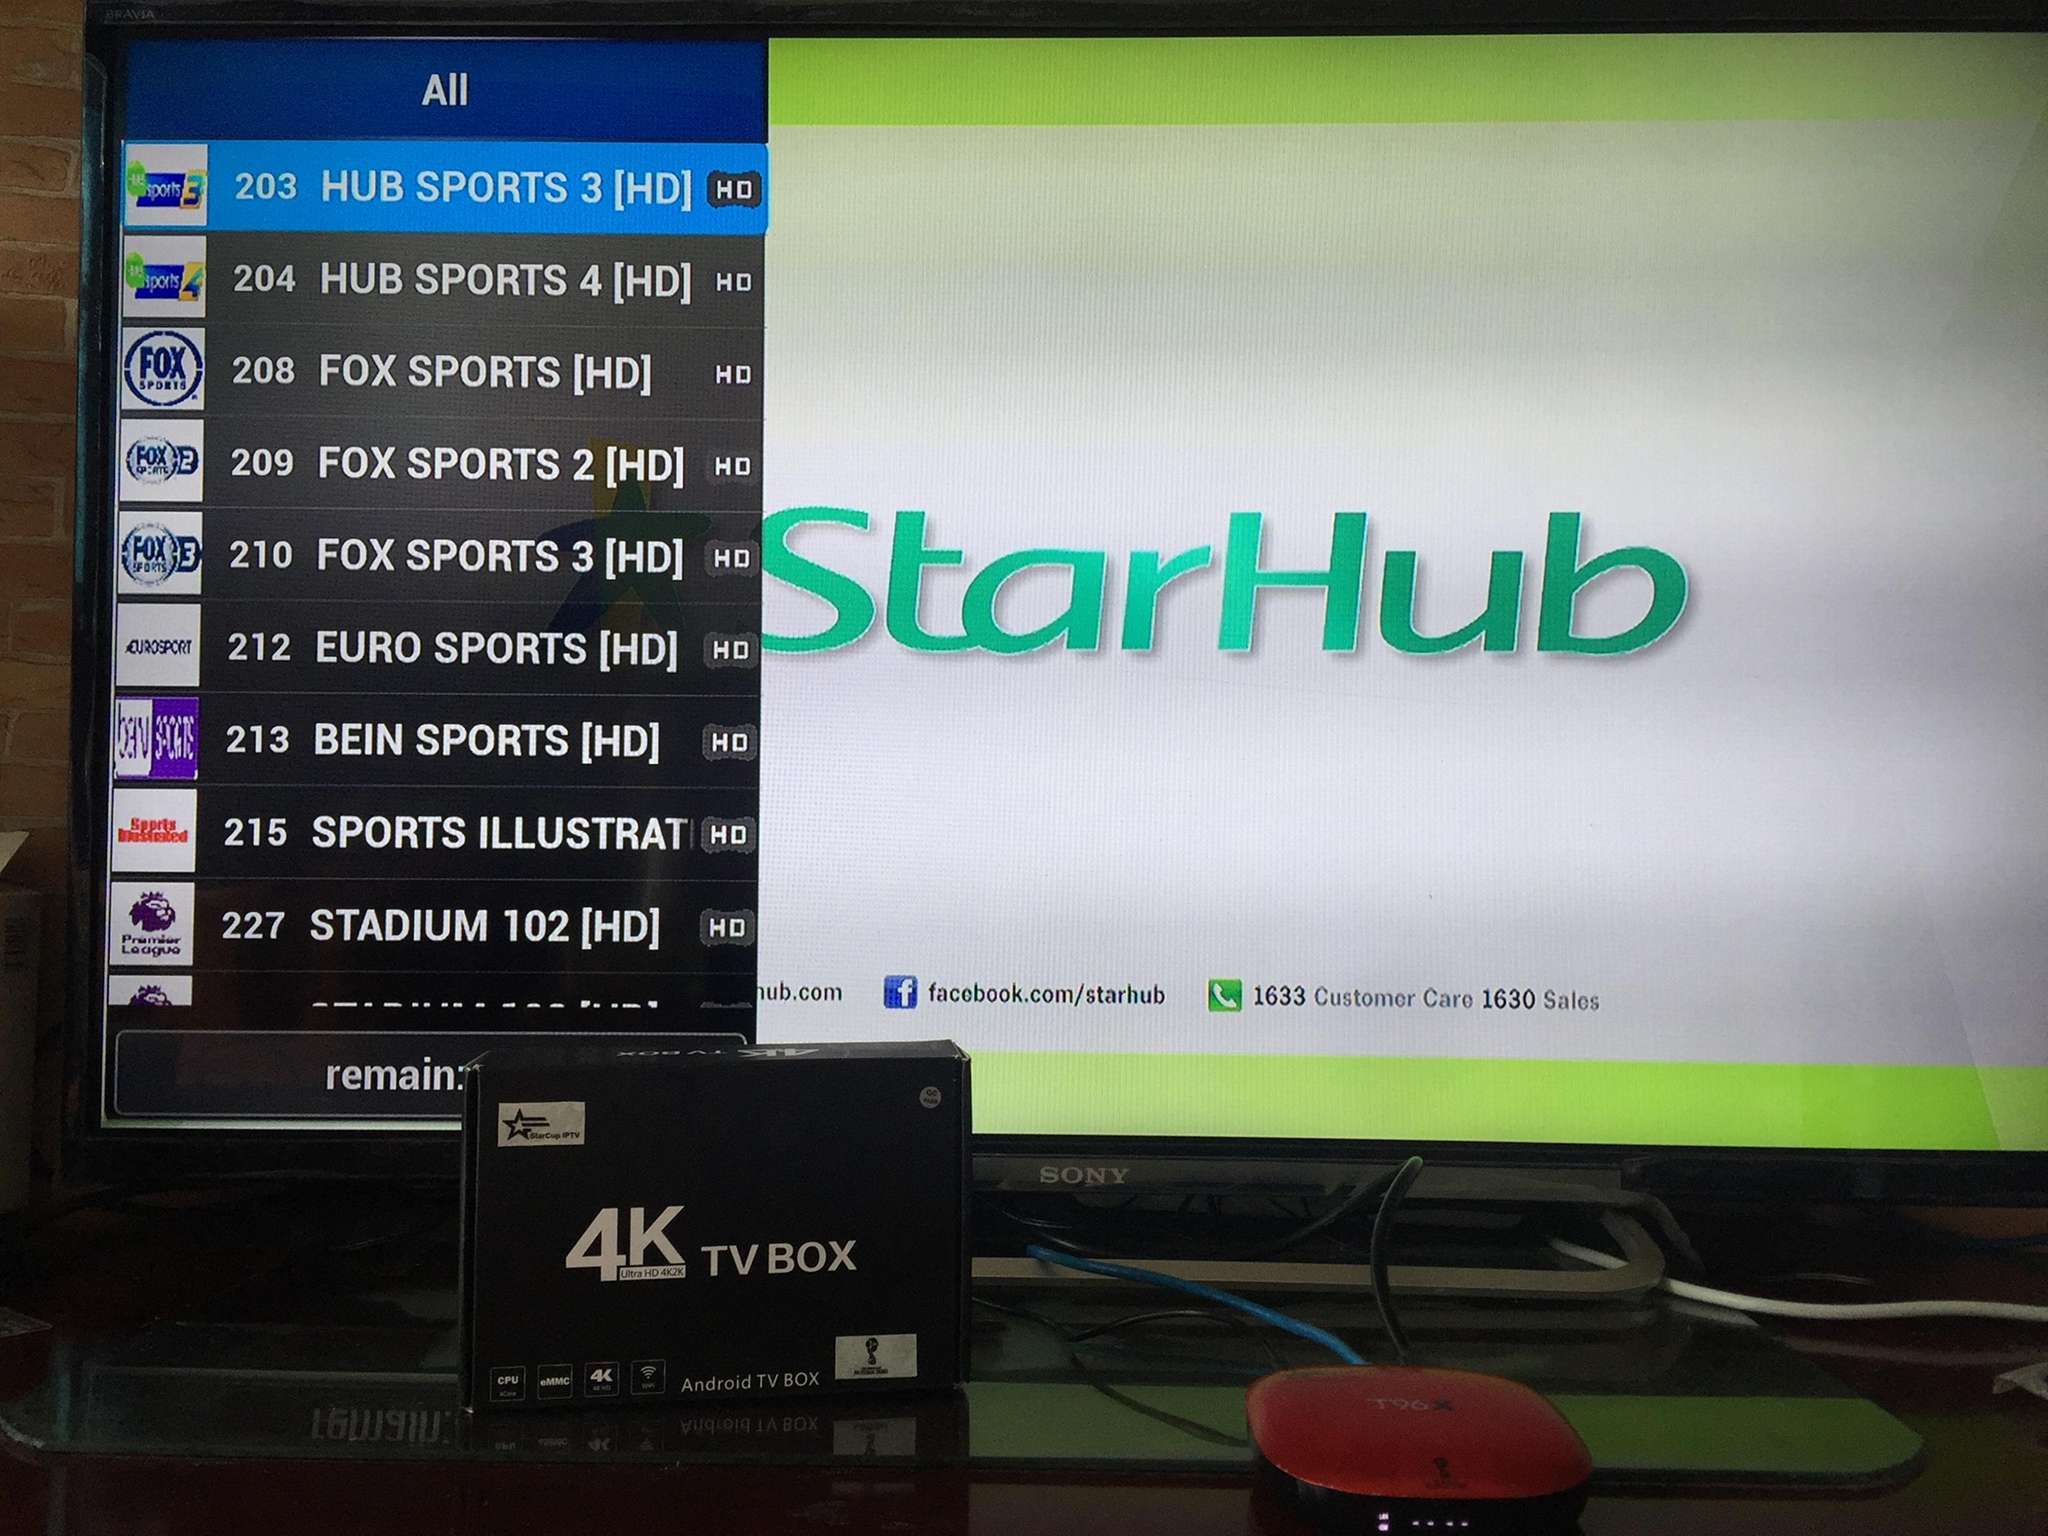 StarCup IPTV Singapore with all live Starhub tv channels and